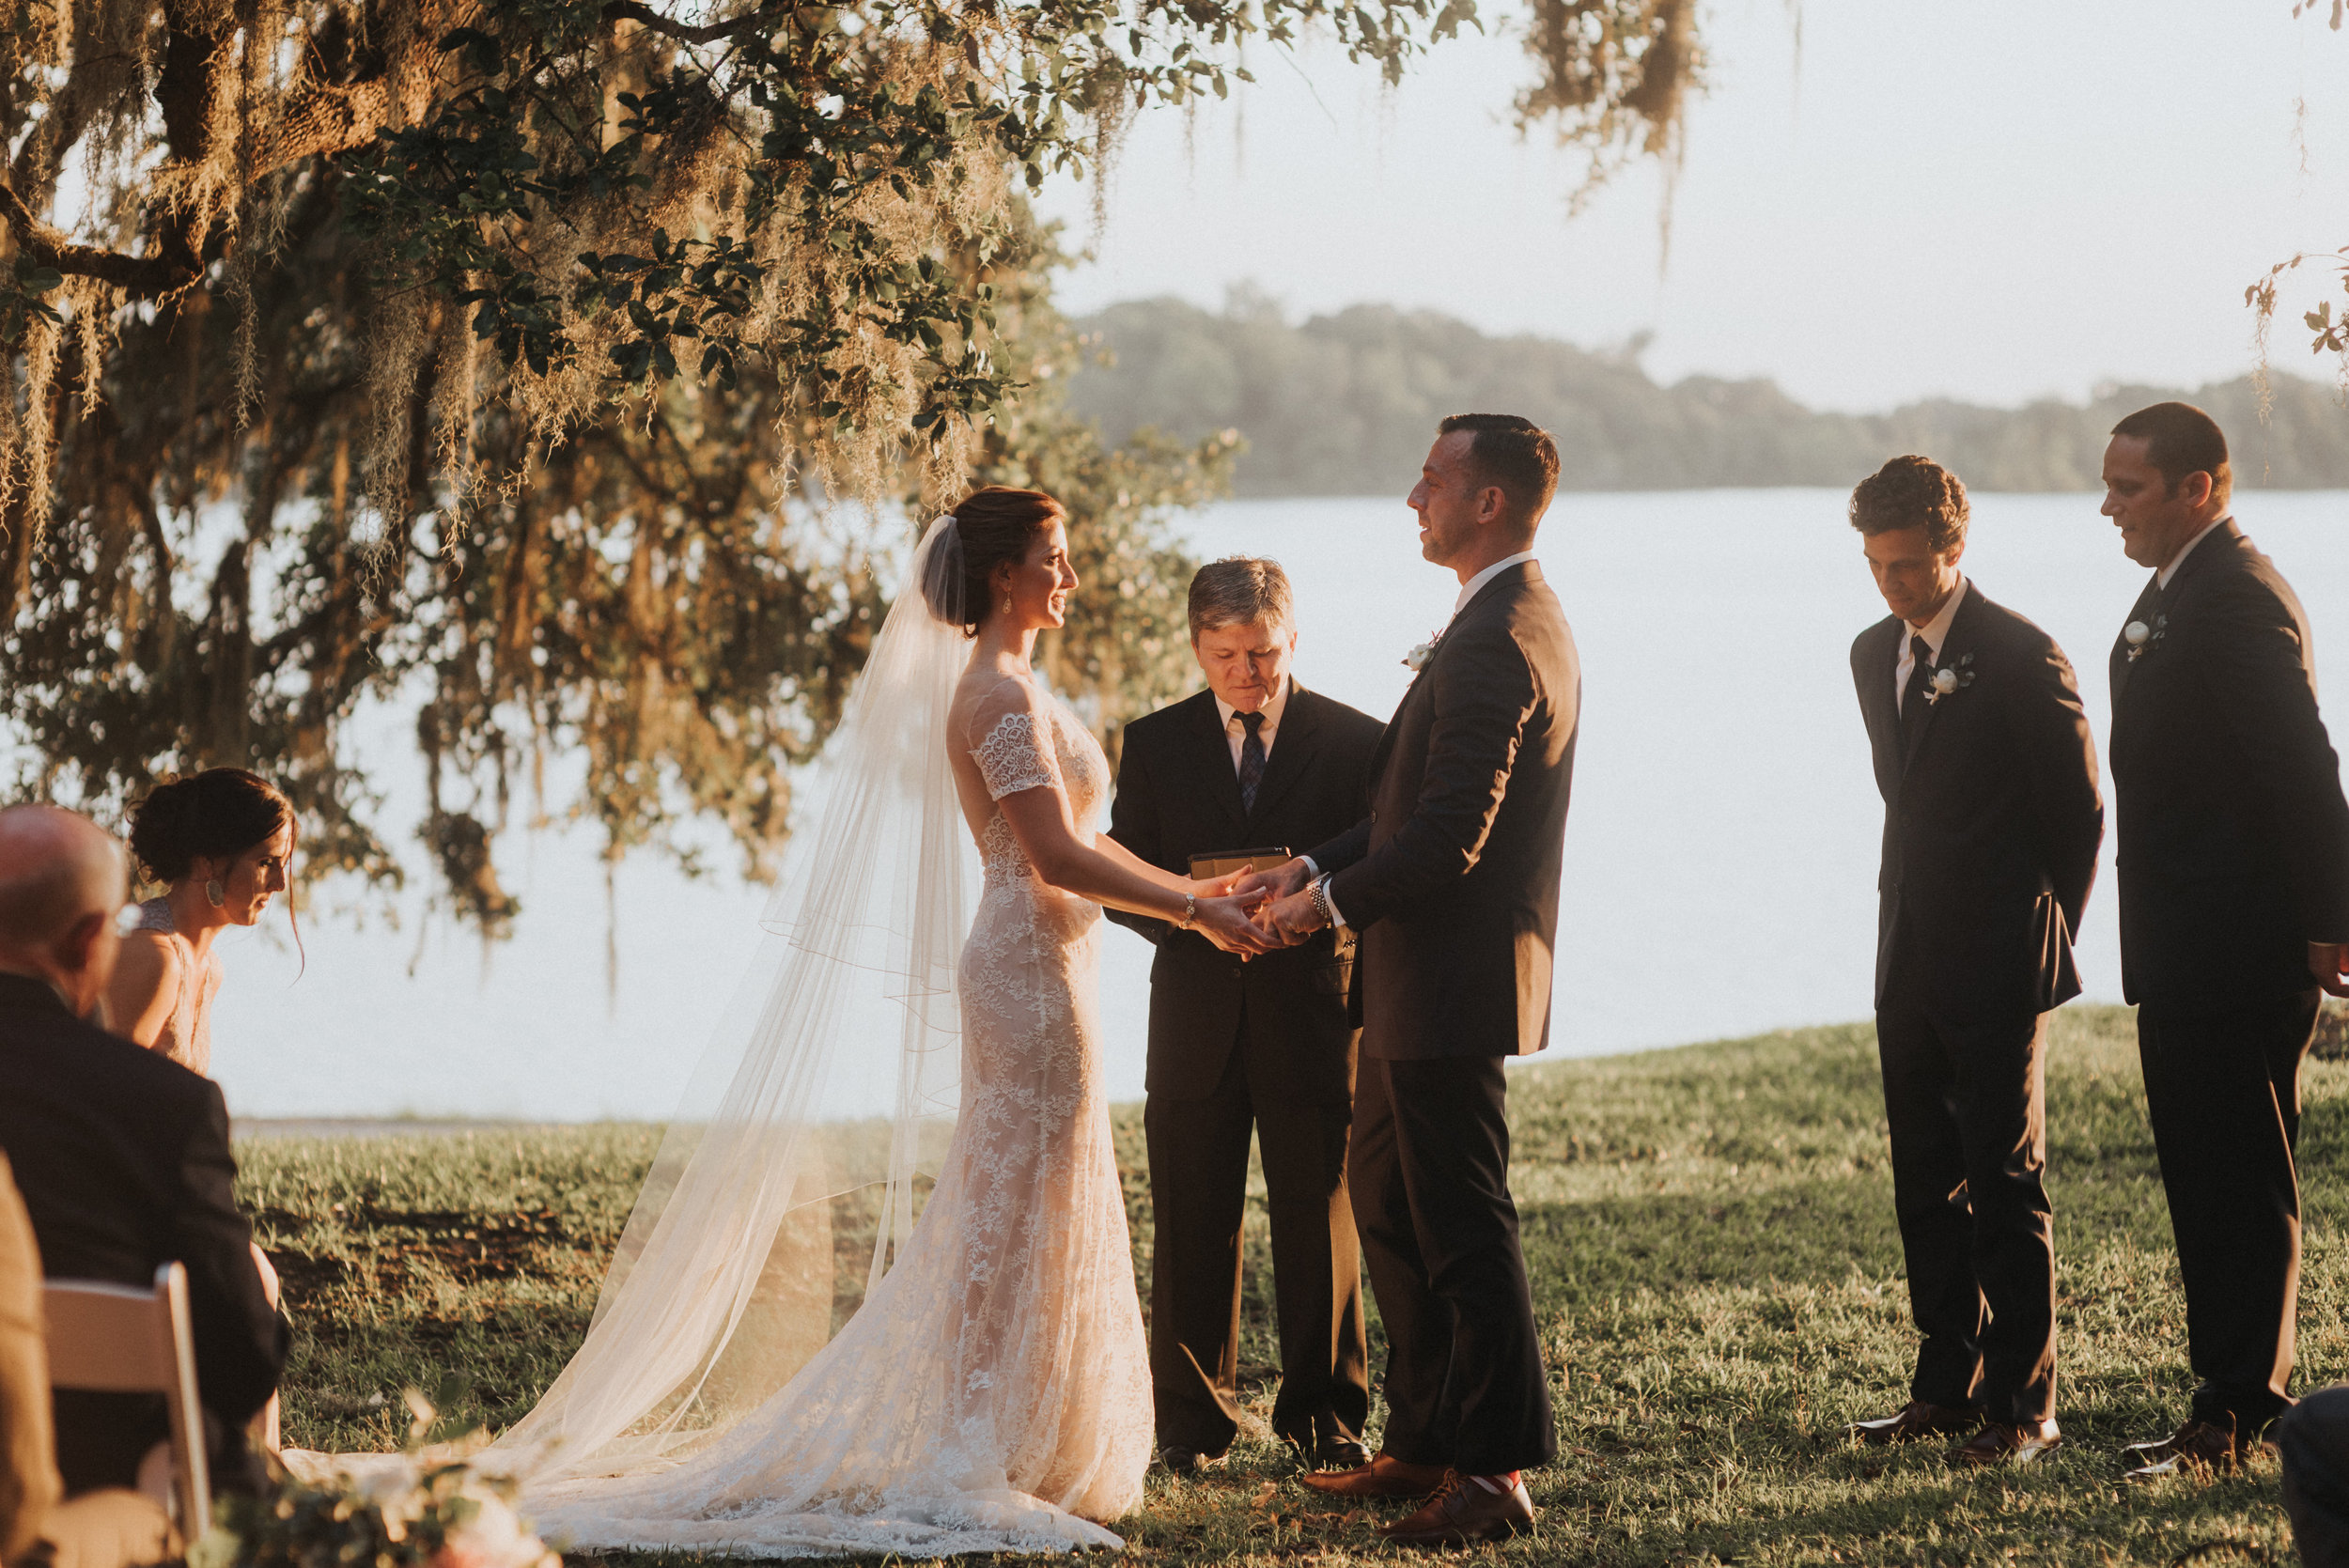 Southern Fete, Southern Wedding, Ceremony, Crystal Weddings, Erin and Geoffrey Photography, 63 Films